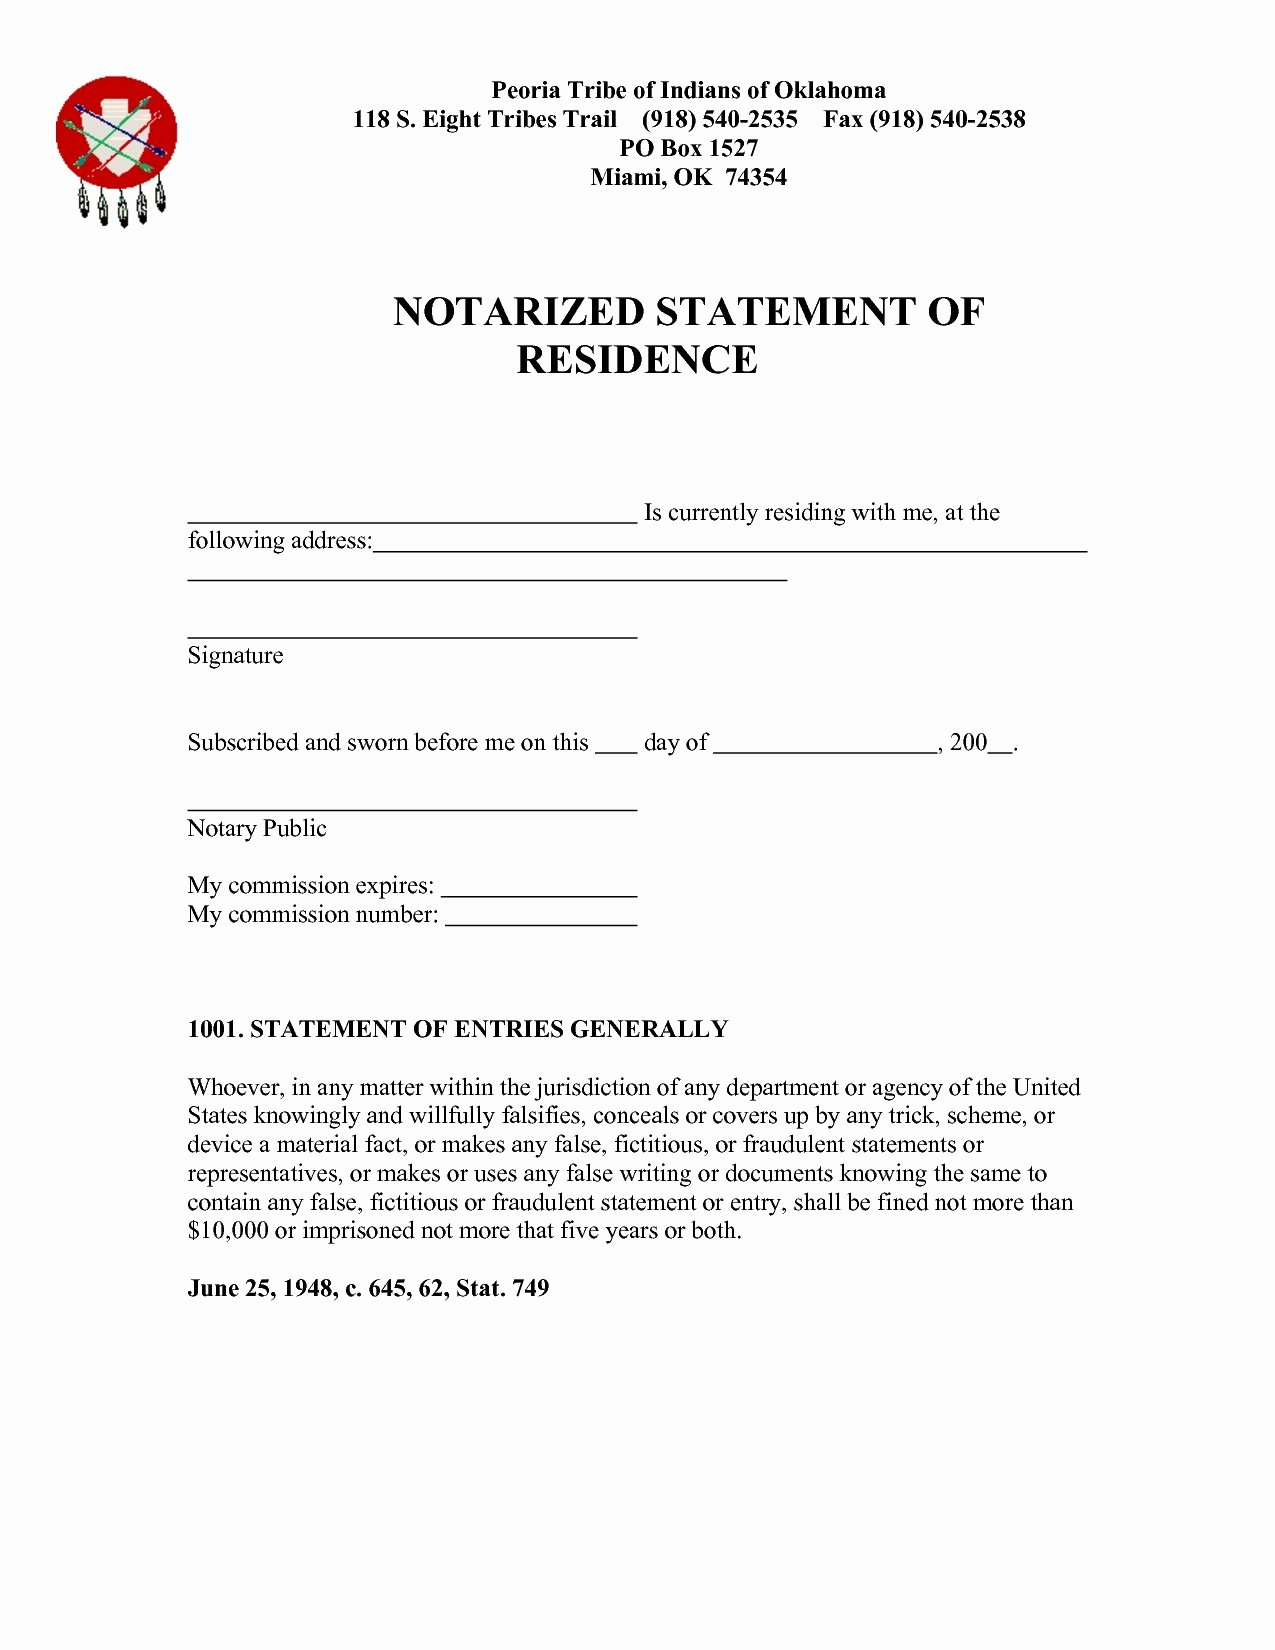 Proof Of Residency Letter Notarized Inspirational Notarized Letter Sample Residence Flowersheet